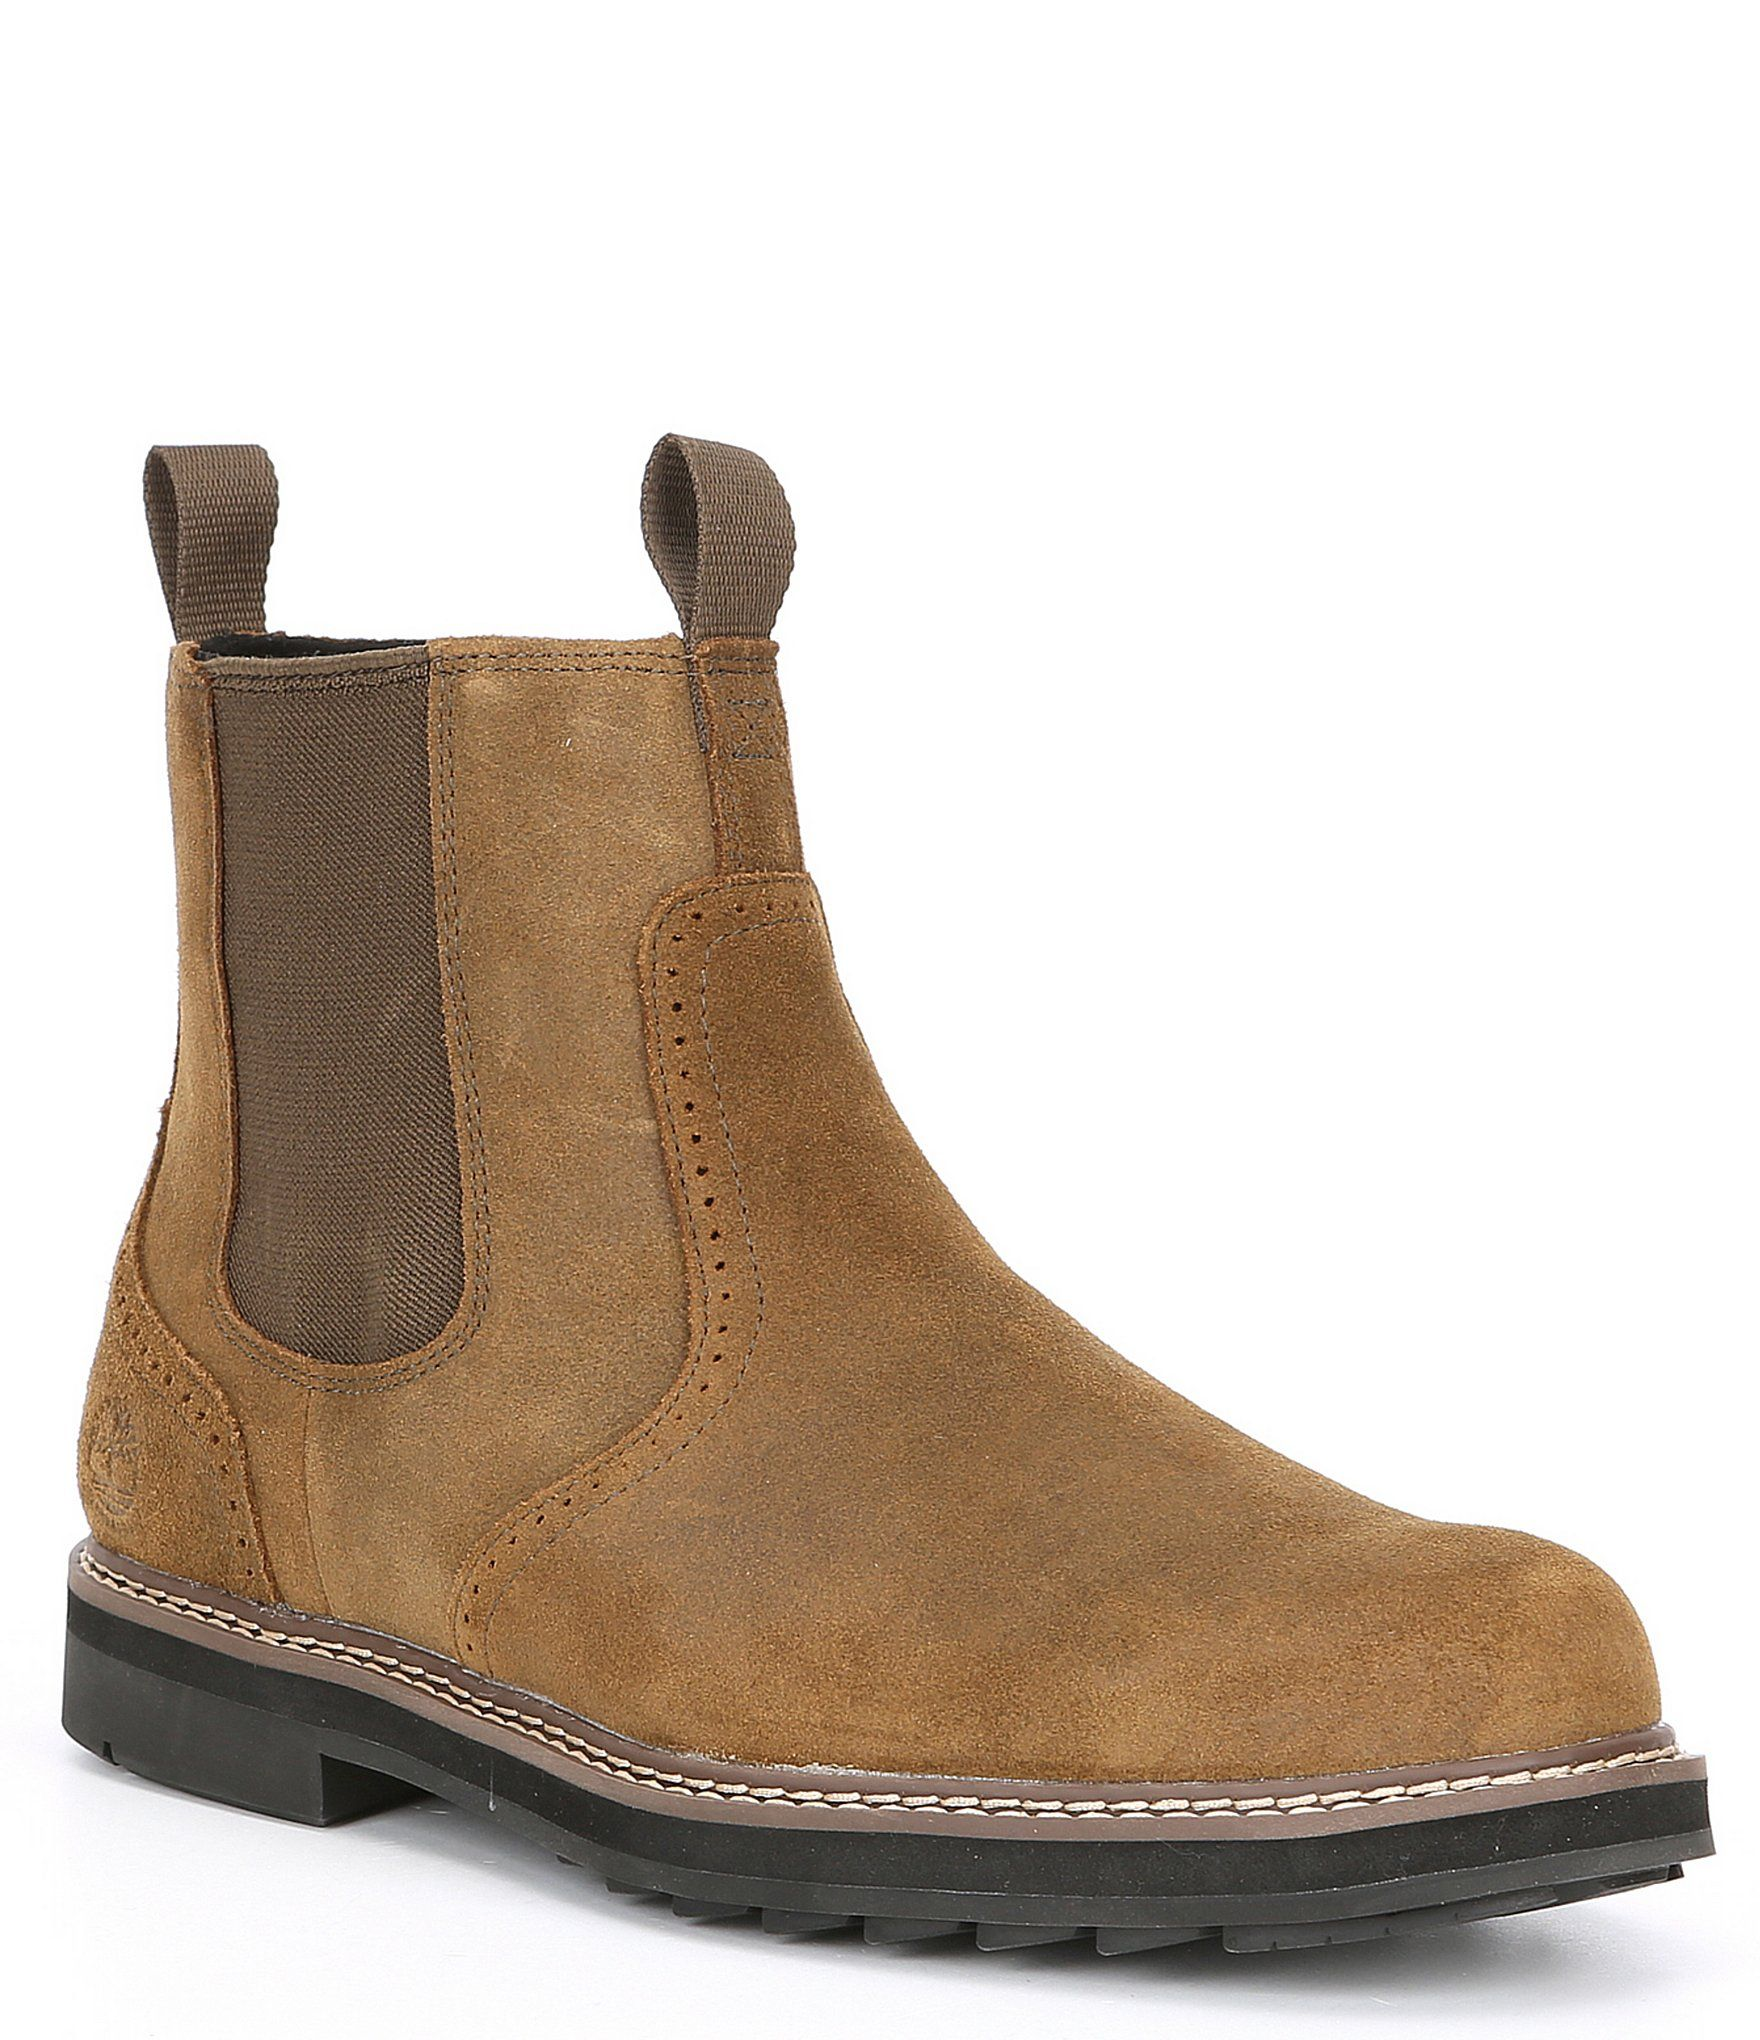 Timberland Men's Squall Canyon Waterproof Leather Side Zip